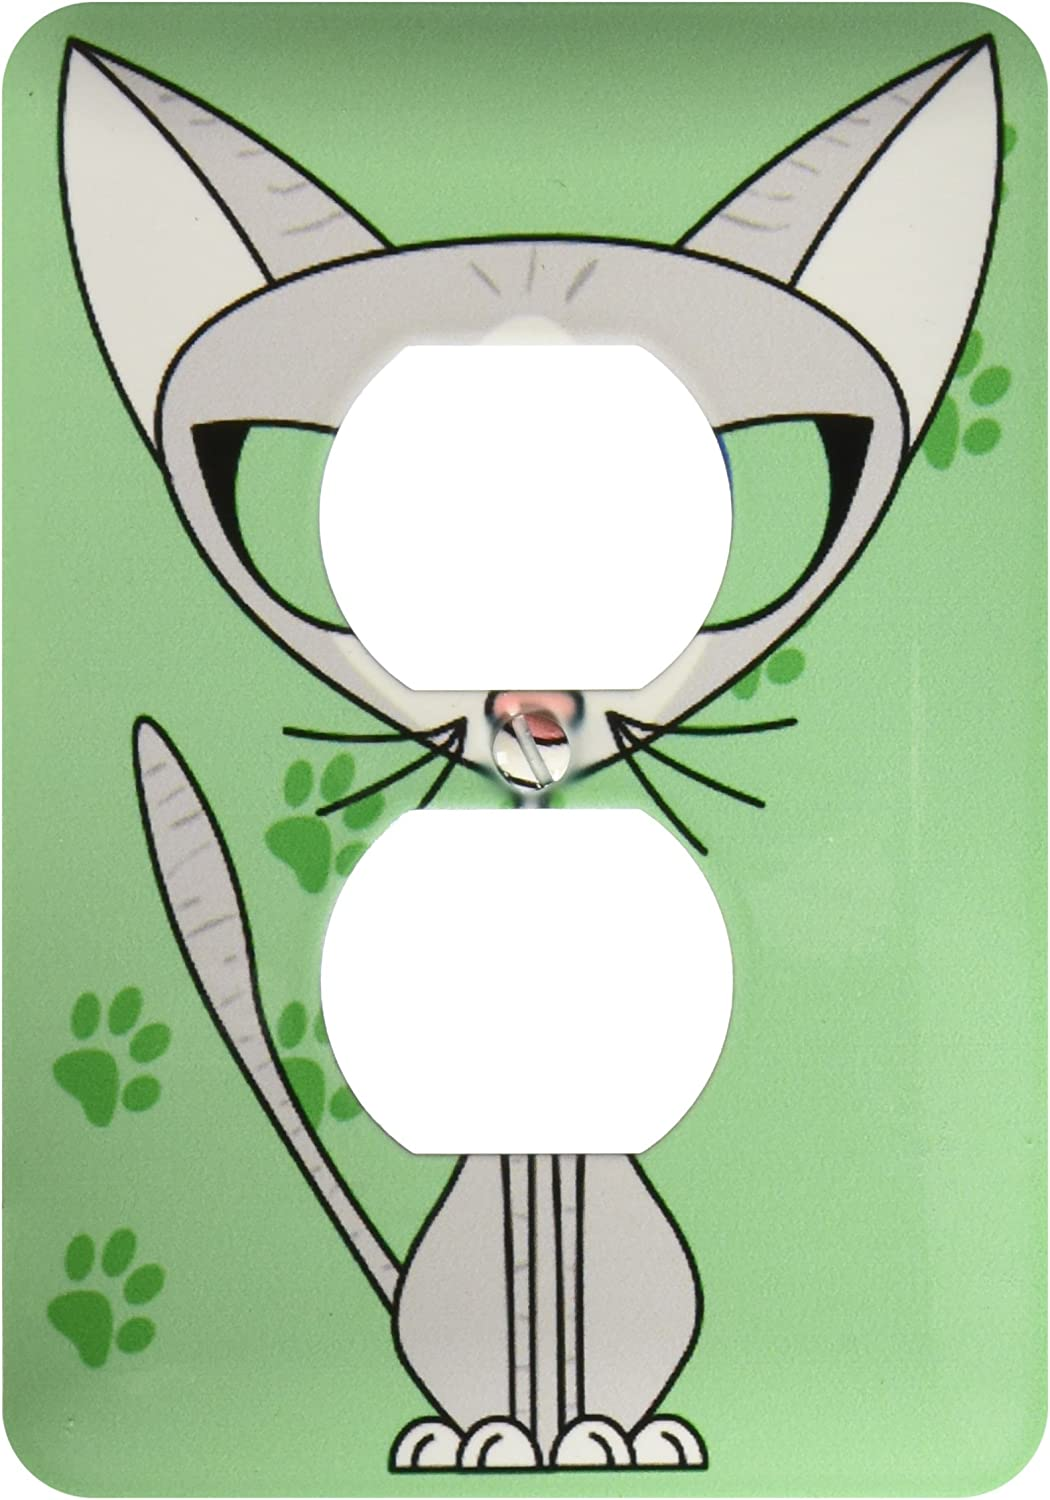 3drose Lsp 6301 6 Fancy Feline Grey Cat Design Light Green 2 Plug Outlet Cover Multicolor Outlet Plates